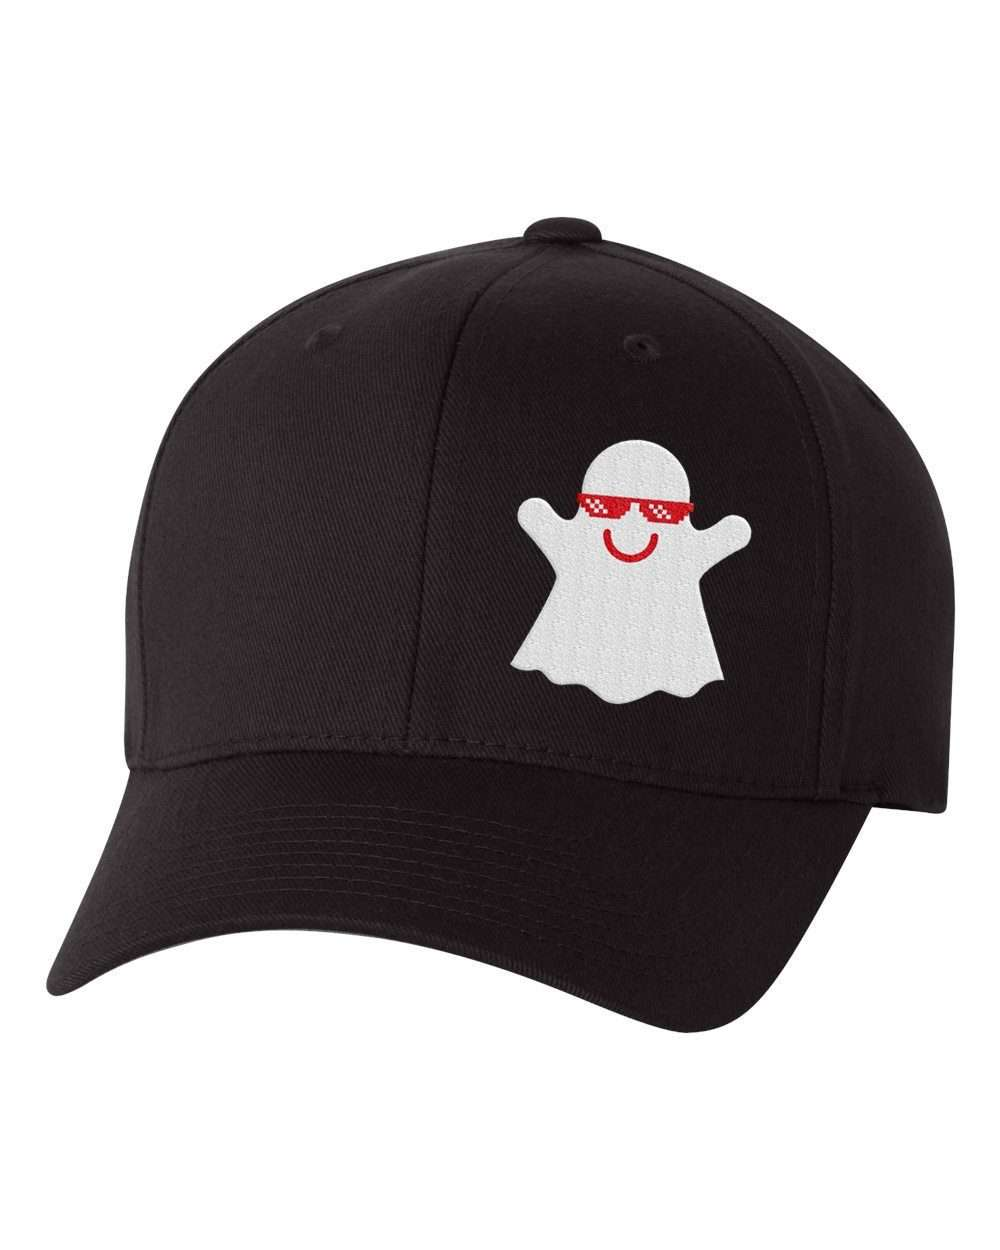 Hat - Ghost Custom Flex Fit Hat, Baseball Hat With Ghost